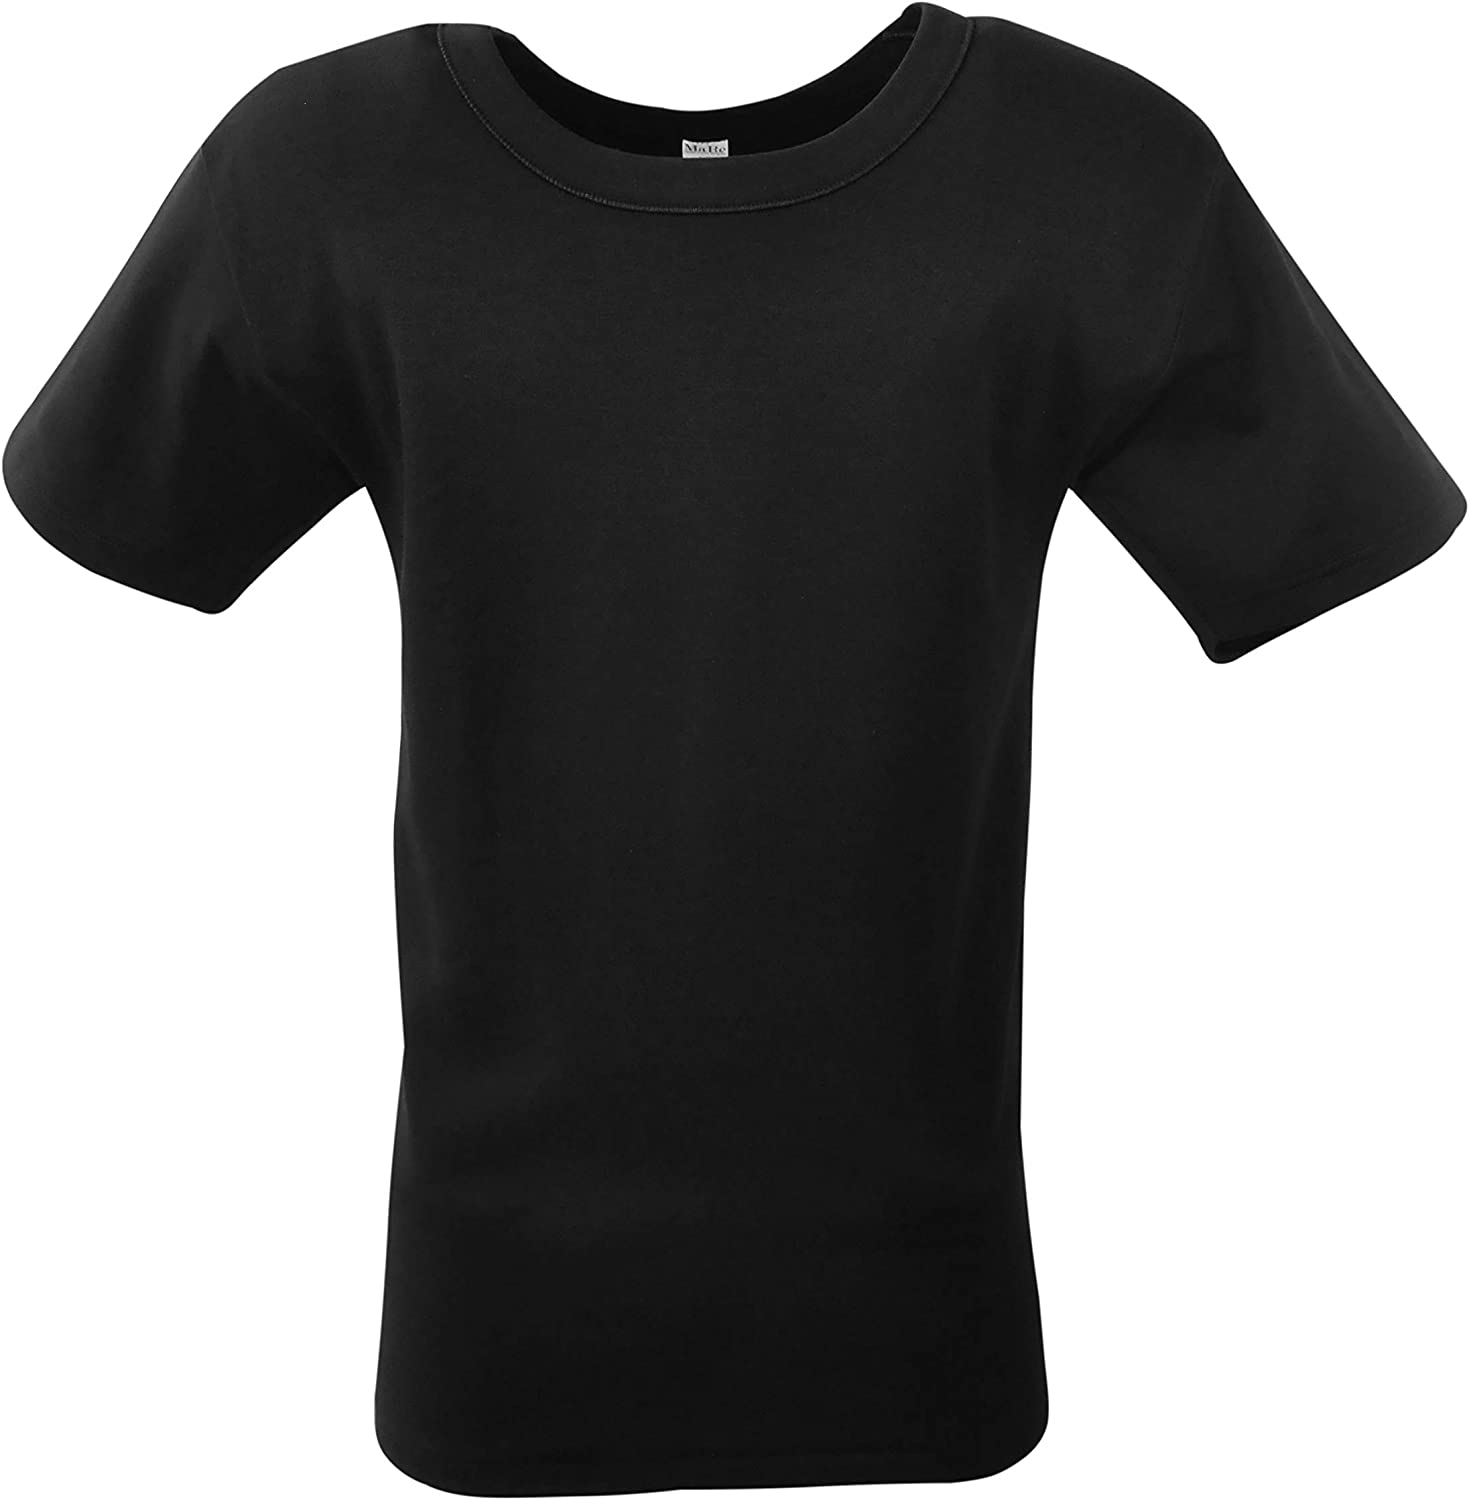 MaRe Premium Quality 100% Brushed Cotton/Fleece Men's Crew Neck T-Shirt. Proudly Made in Italy.